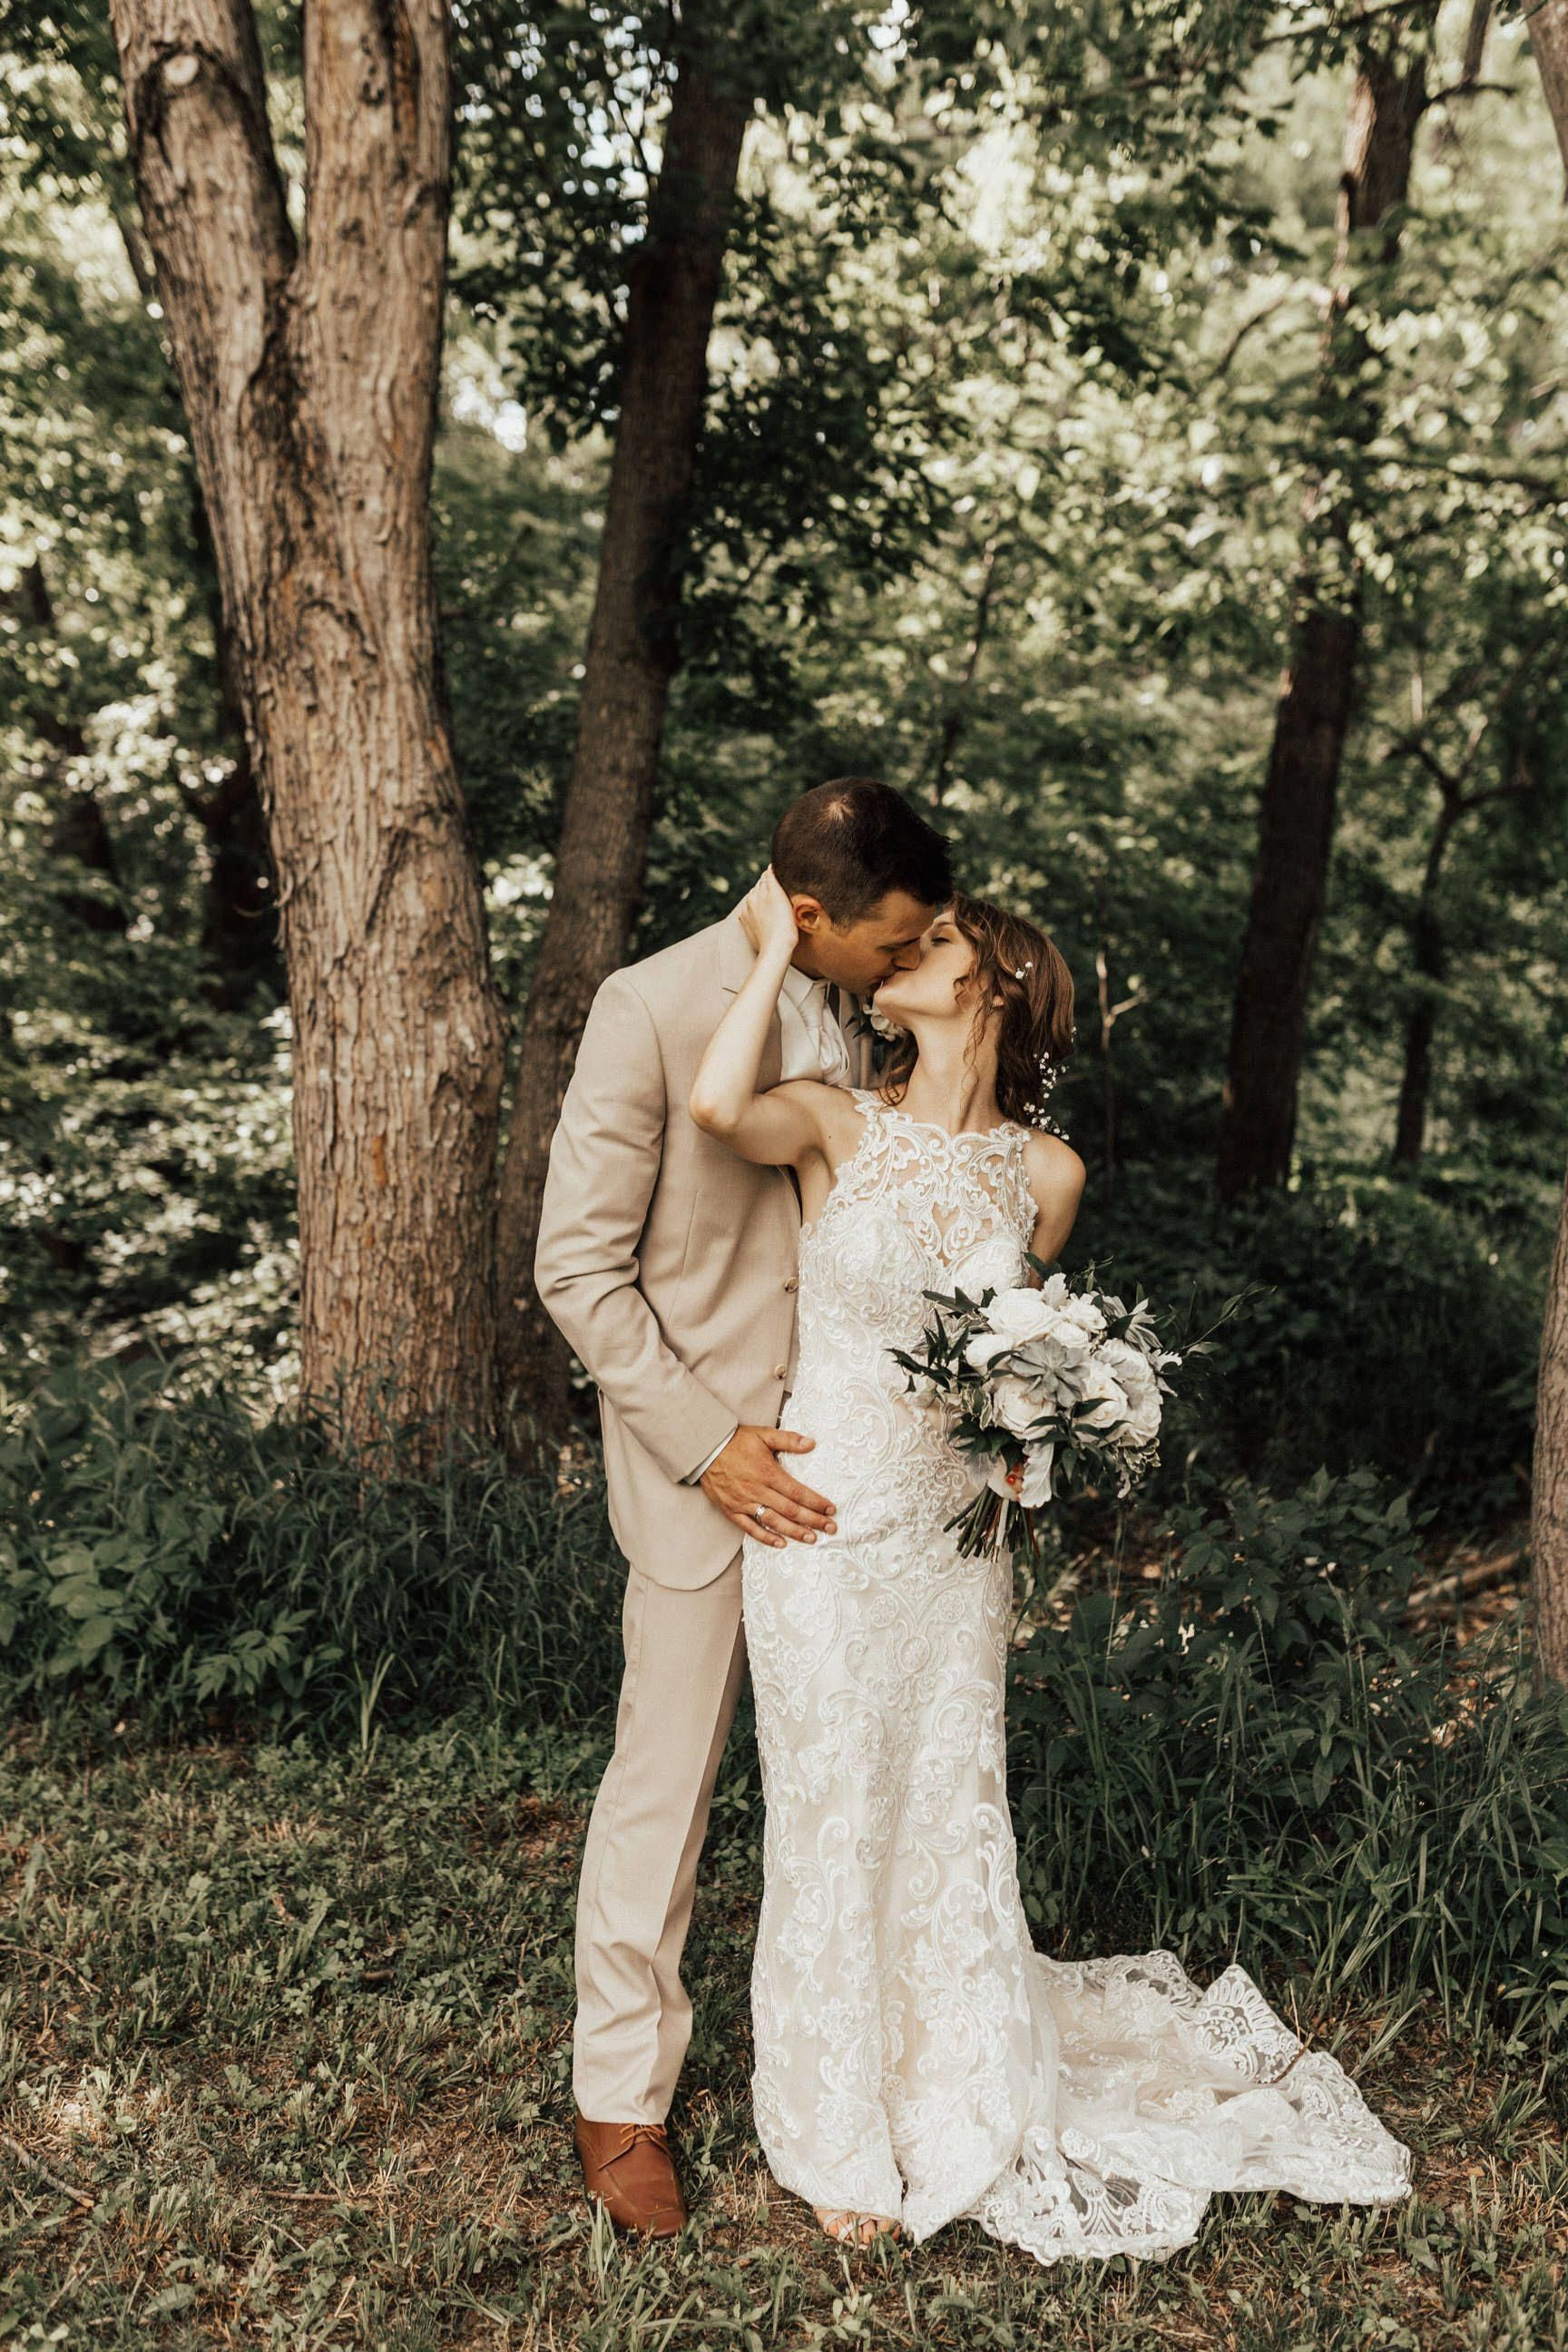 Check Out This Amazing Vintage Wedding Photograhy Vintageweddingphotograhy Wedding Photos Woodsy Wedding Wedding Photography Styles